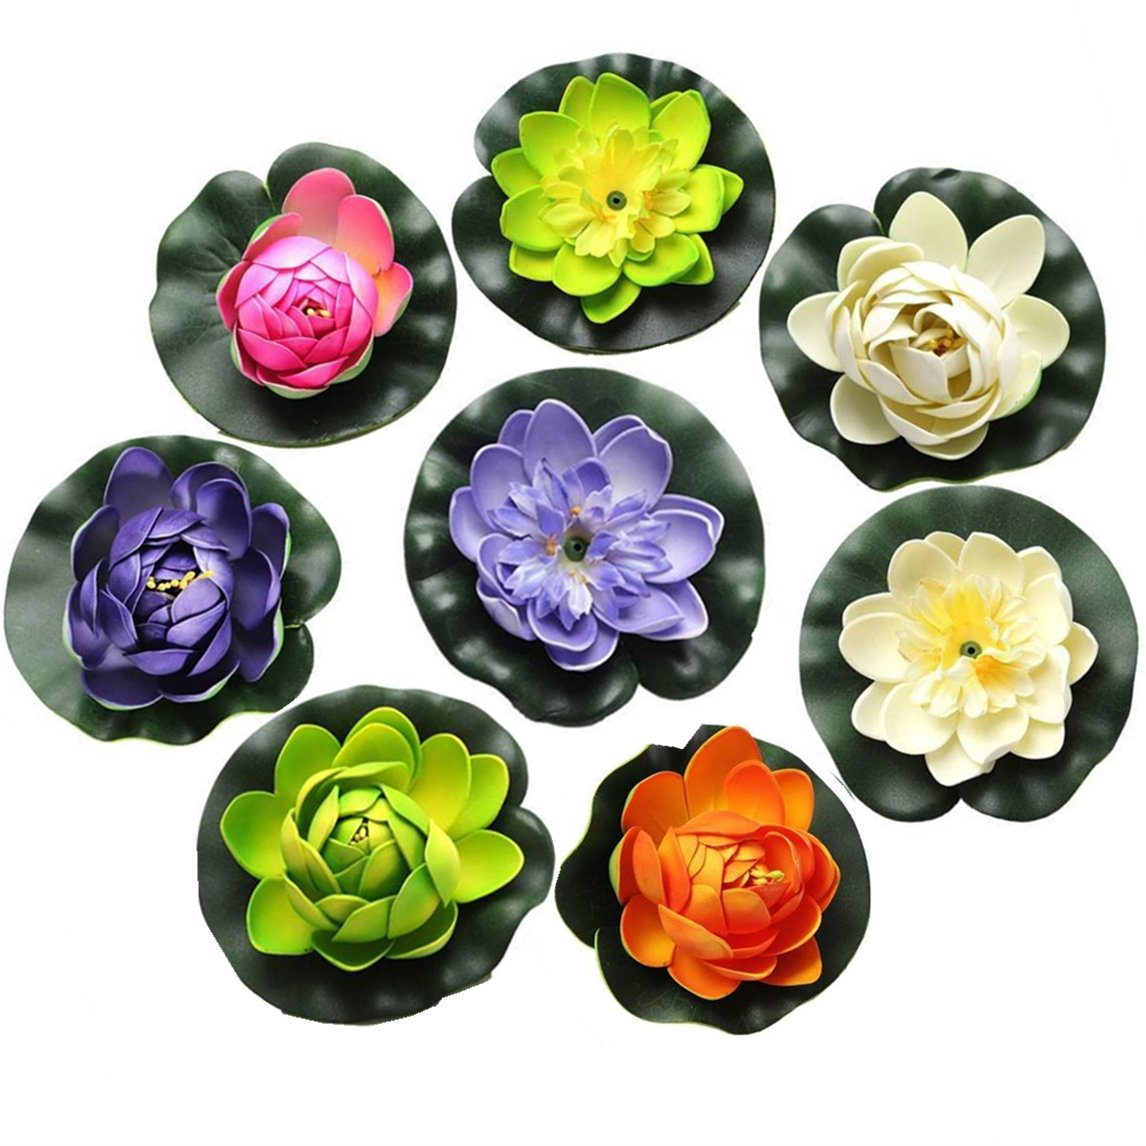 FQTANJU Foam Water Lily Flower Decor Artificial Floating Pond Plants Multicolor (8 Pieces/1.5'' h x 4'' Dia)